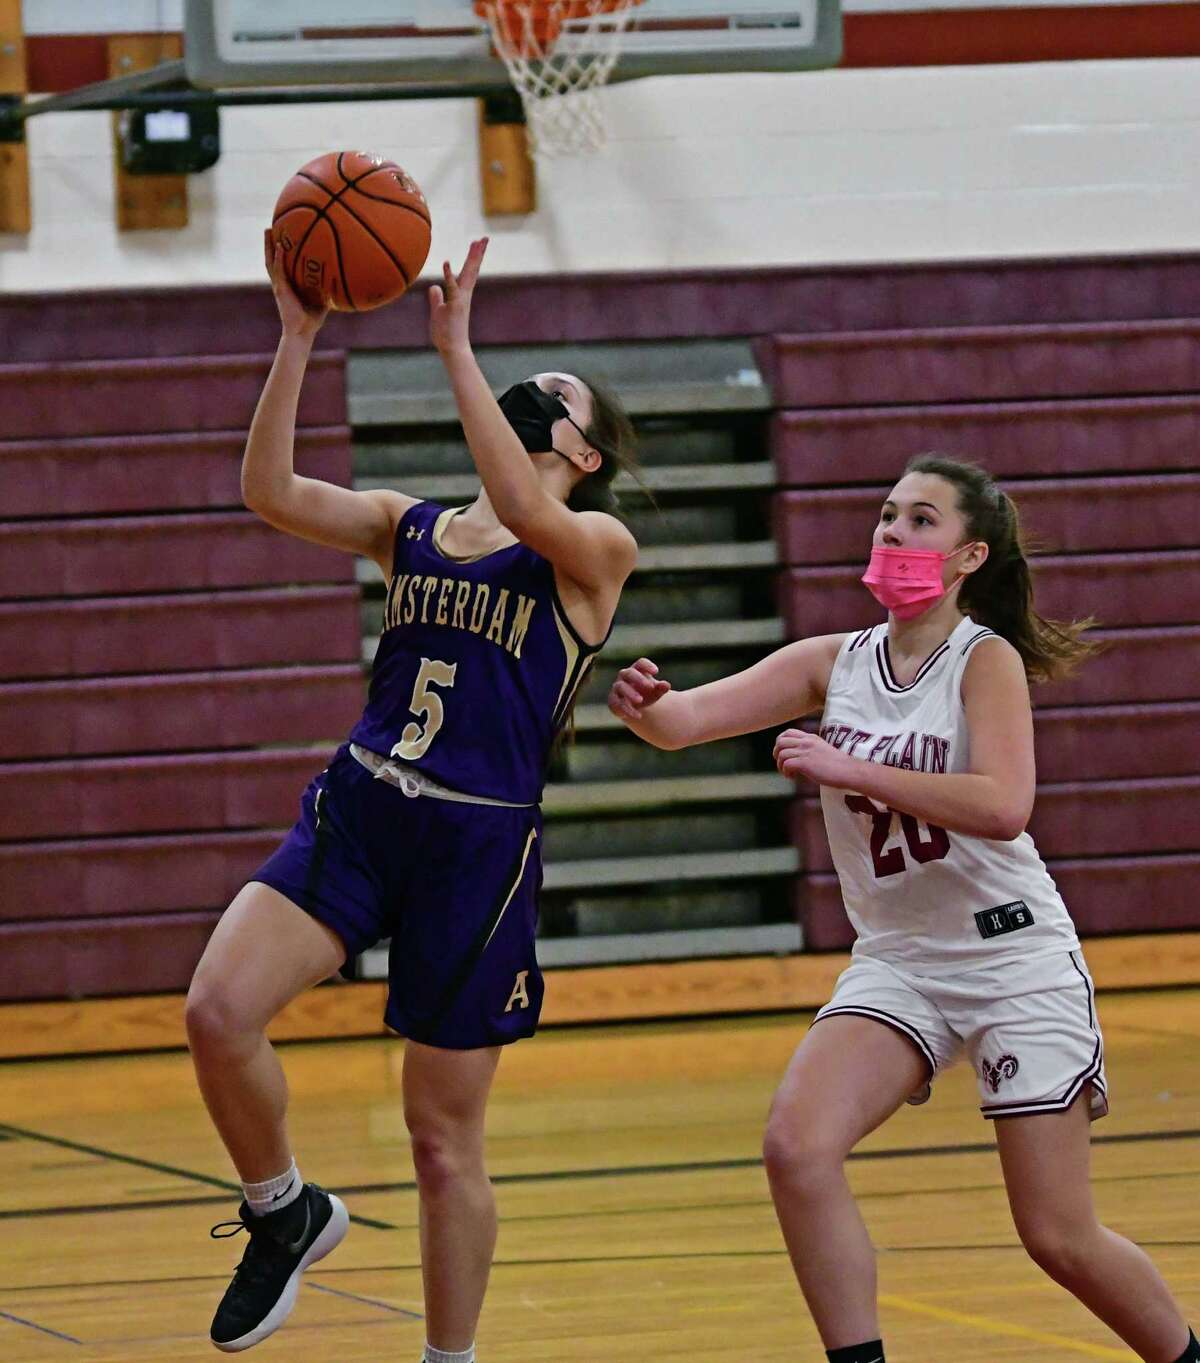 Amsterdam's Anne Stanavich goes up for a layup during a basketball game against Fort Plain on Wednesday, Feb. 10, 2021 in Fort Plain, N.Y. (Lori Van Buren/Times Union)